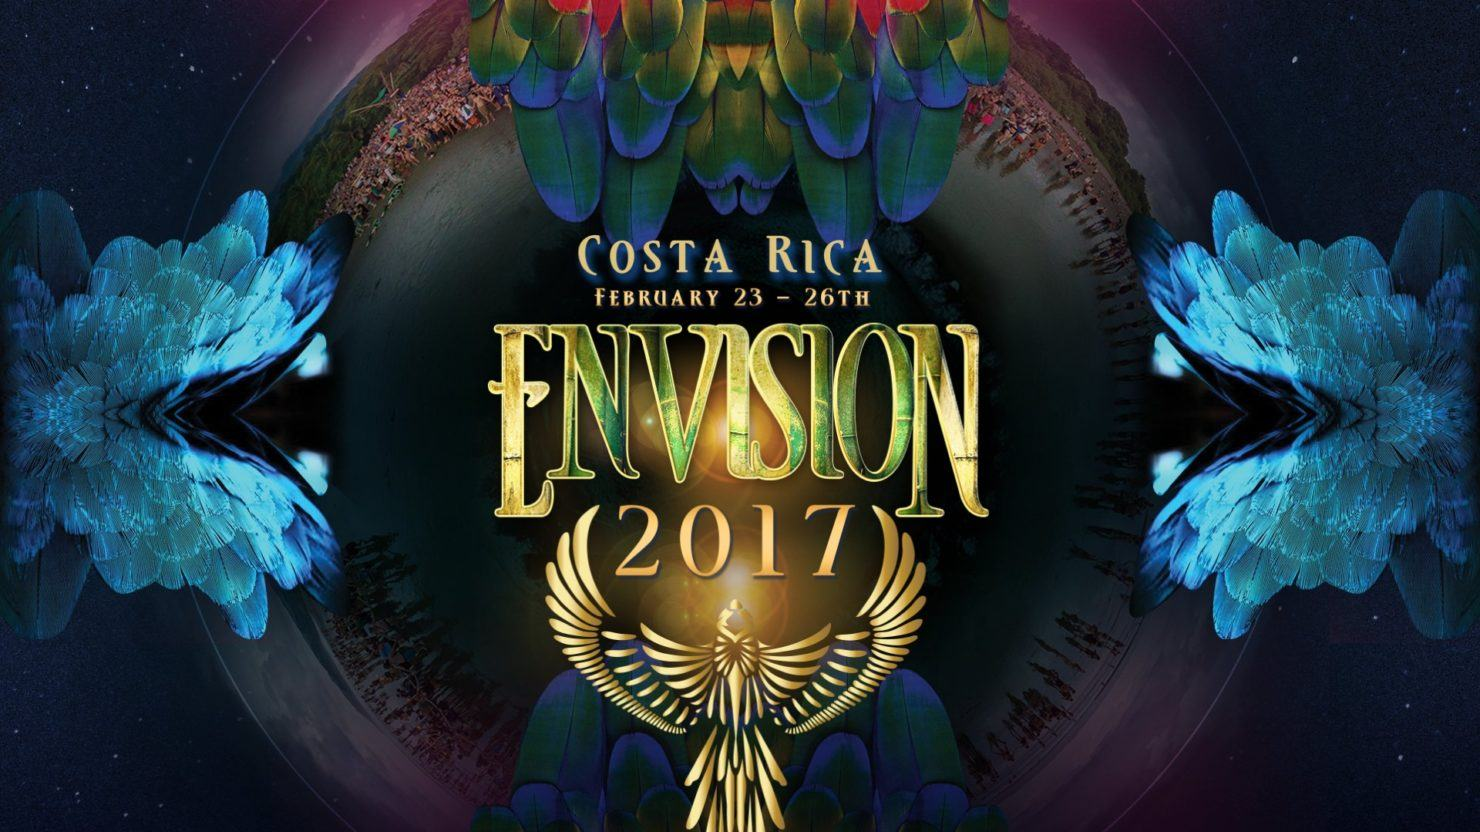 Envision Festival Costa Rica Announces 2017 First Phase Lineup Inbrew Net